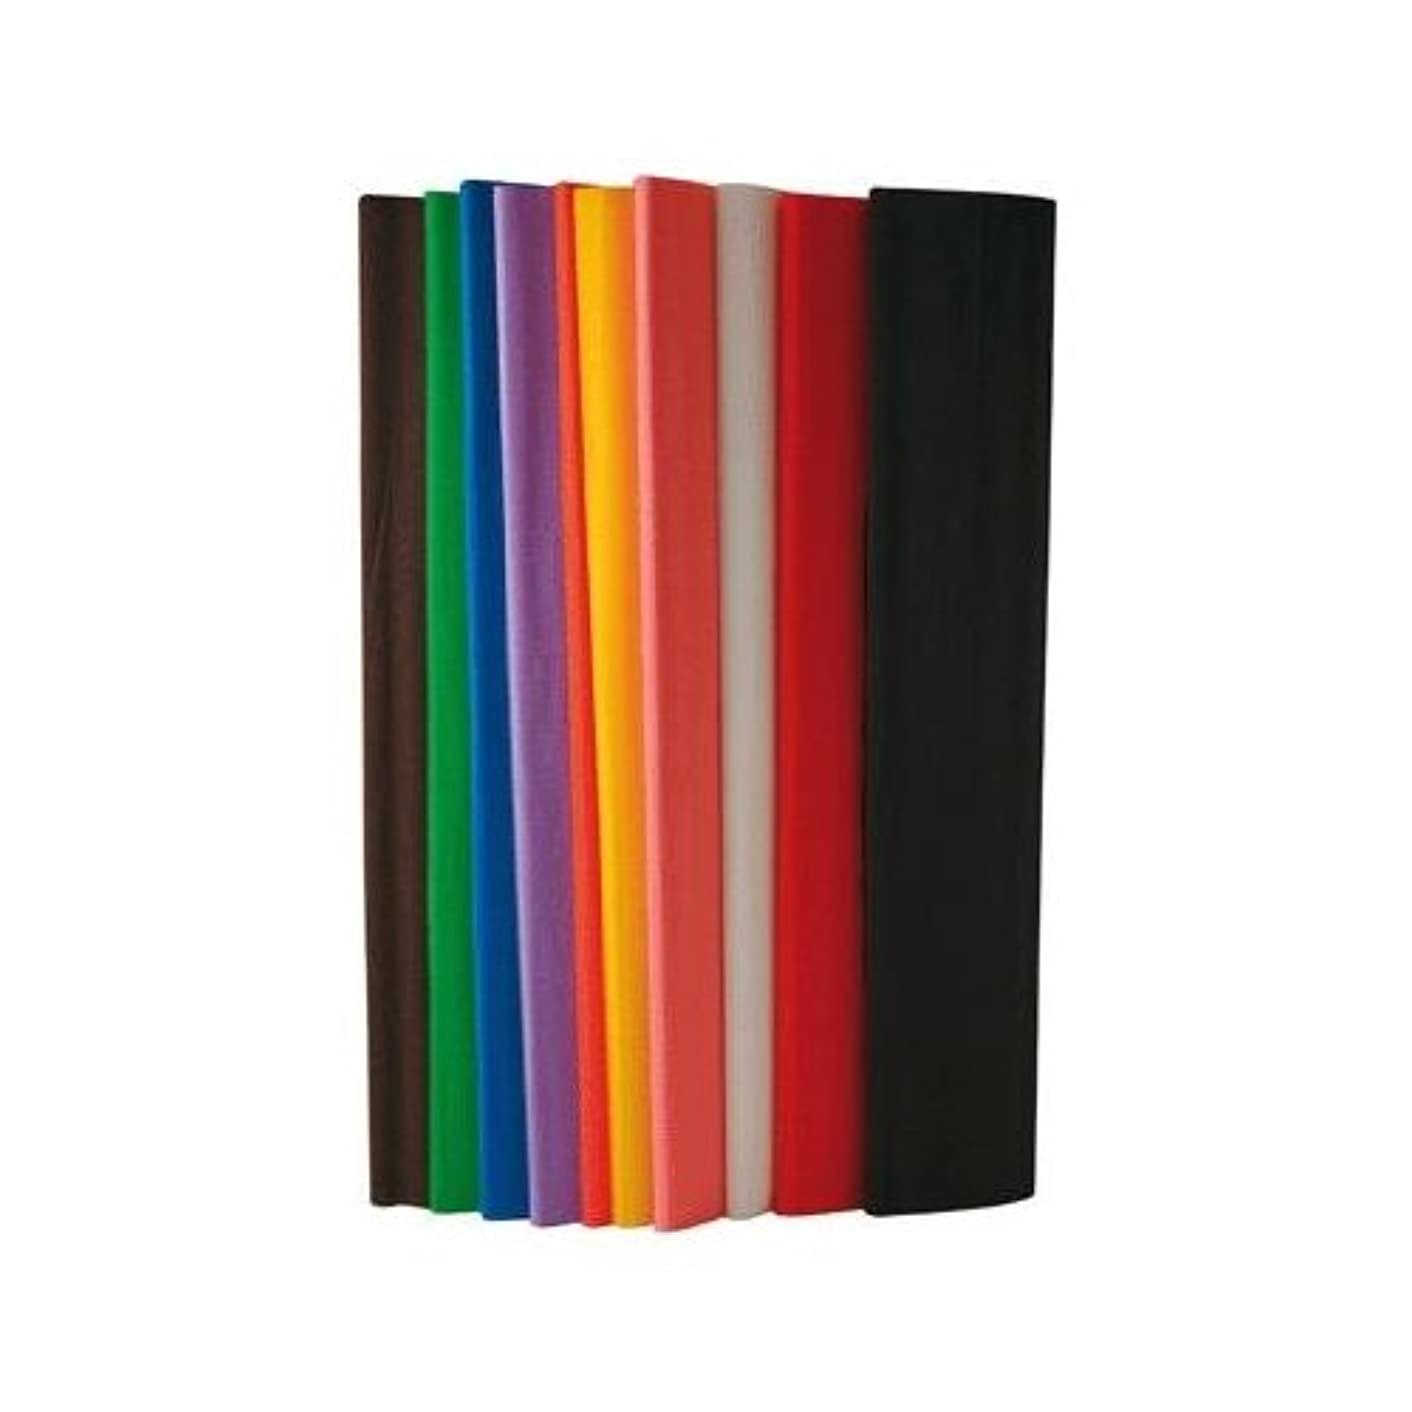 Clairefontaine Crepe Paper, 2.50 x 0.50 m, 10 Sheets, Assorted Colours